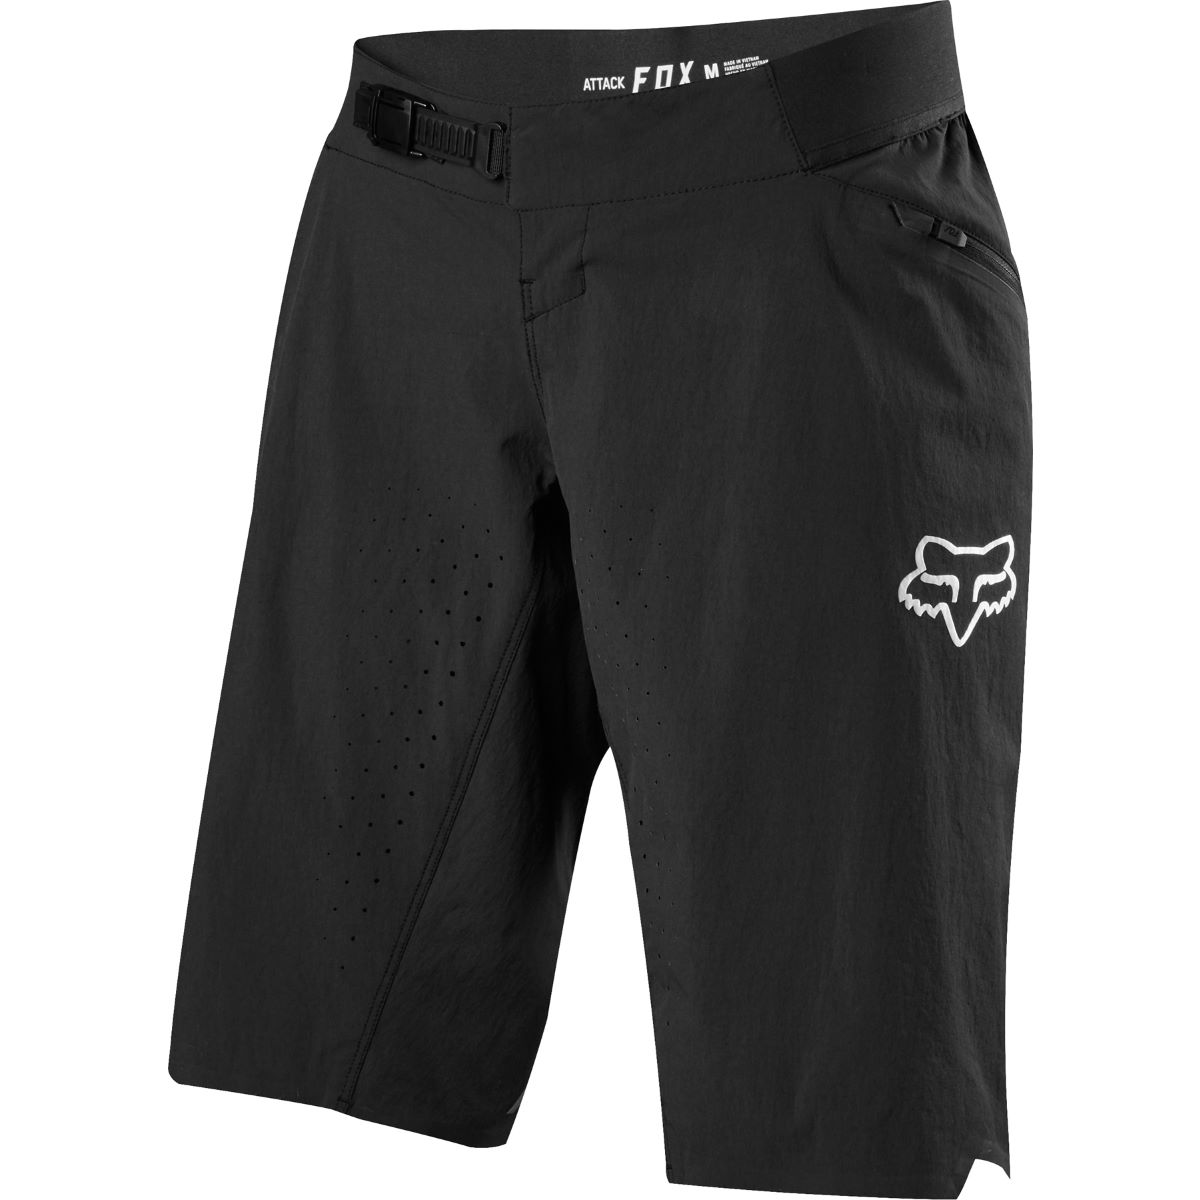 Fox Racing Women's Attack Shorts - S Black | Baggy Cycling Shorts